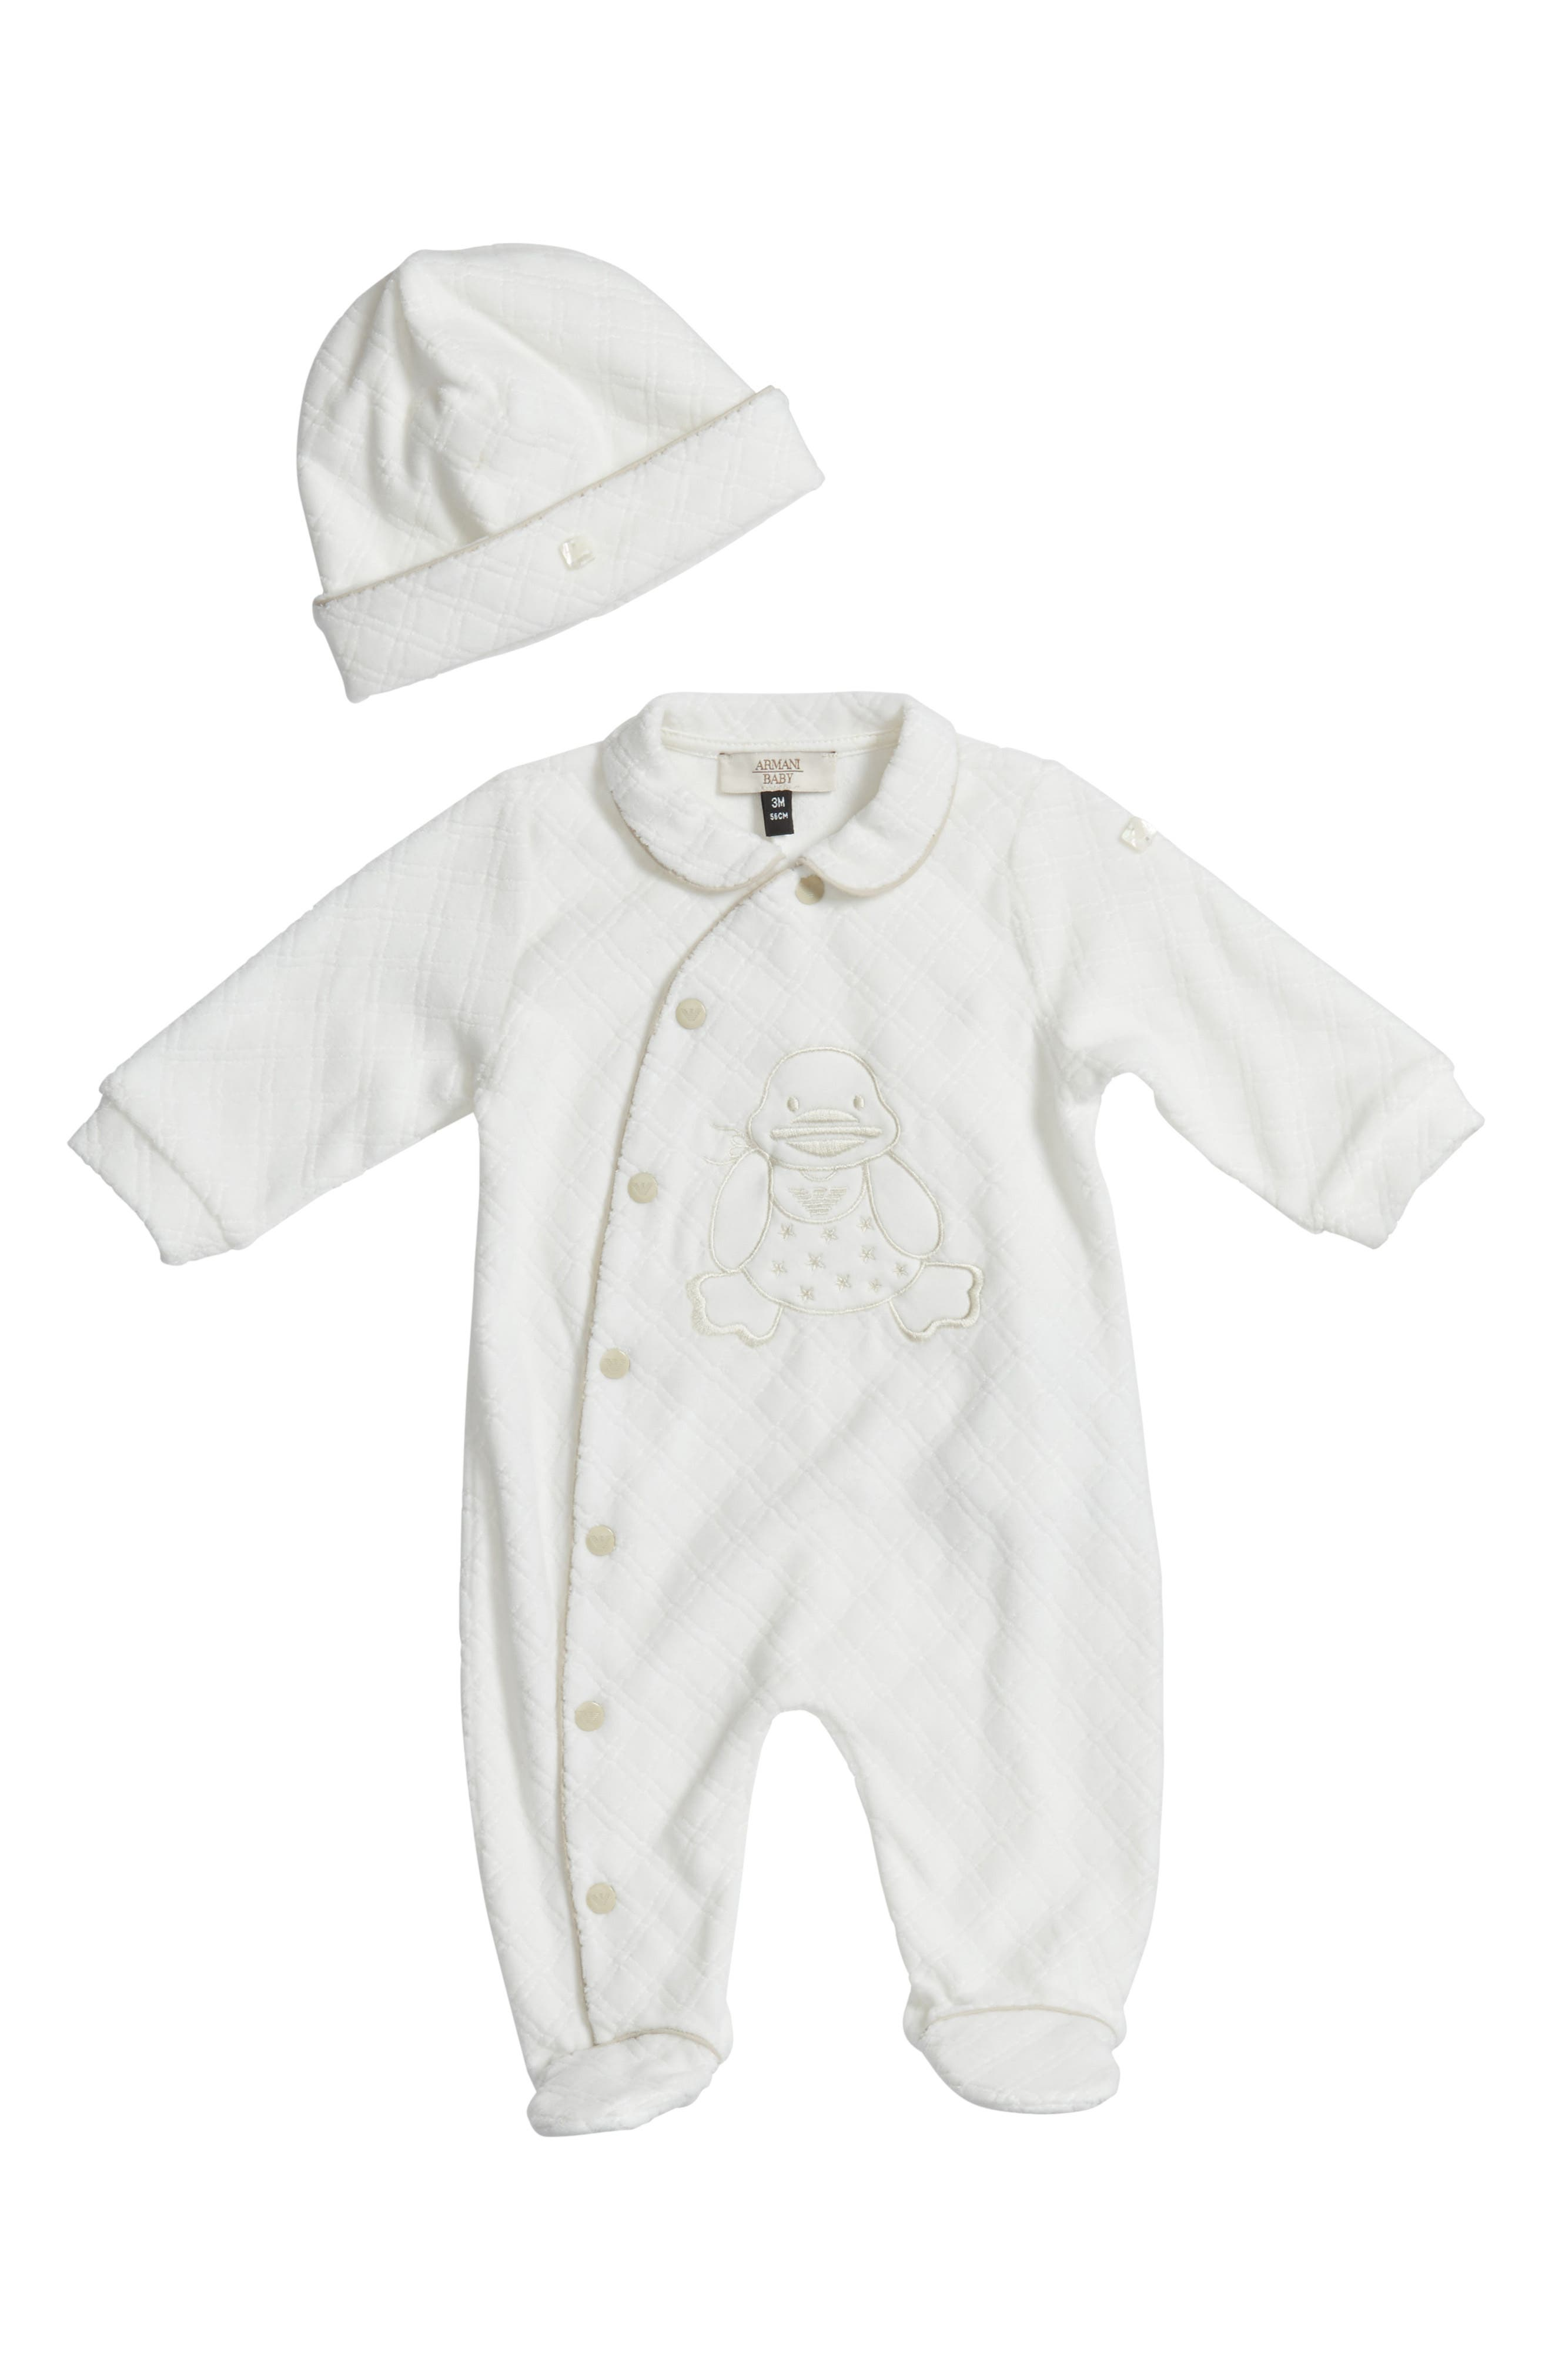 Main Image - Armani Junior Velour Footie & Beanie Set (Baby)